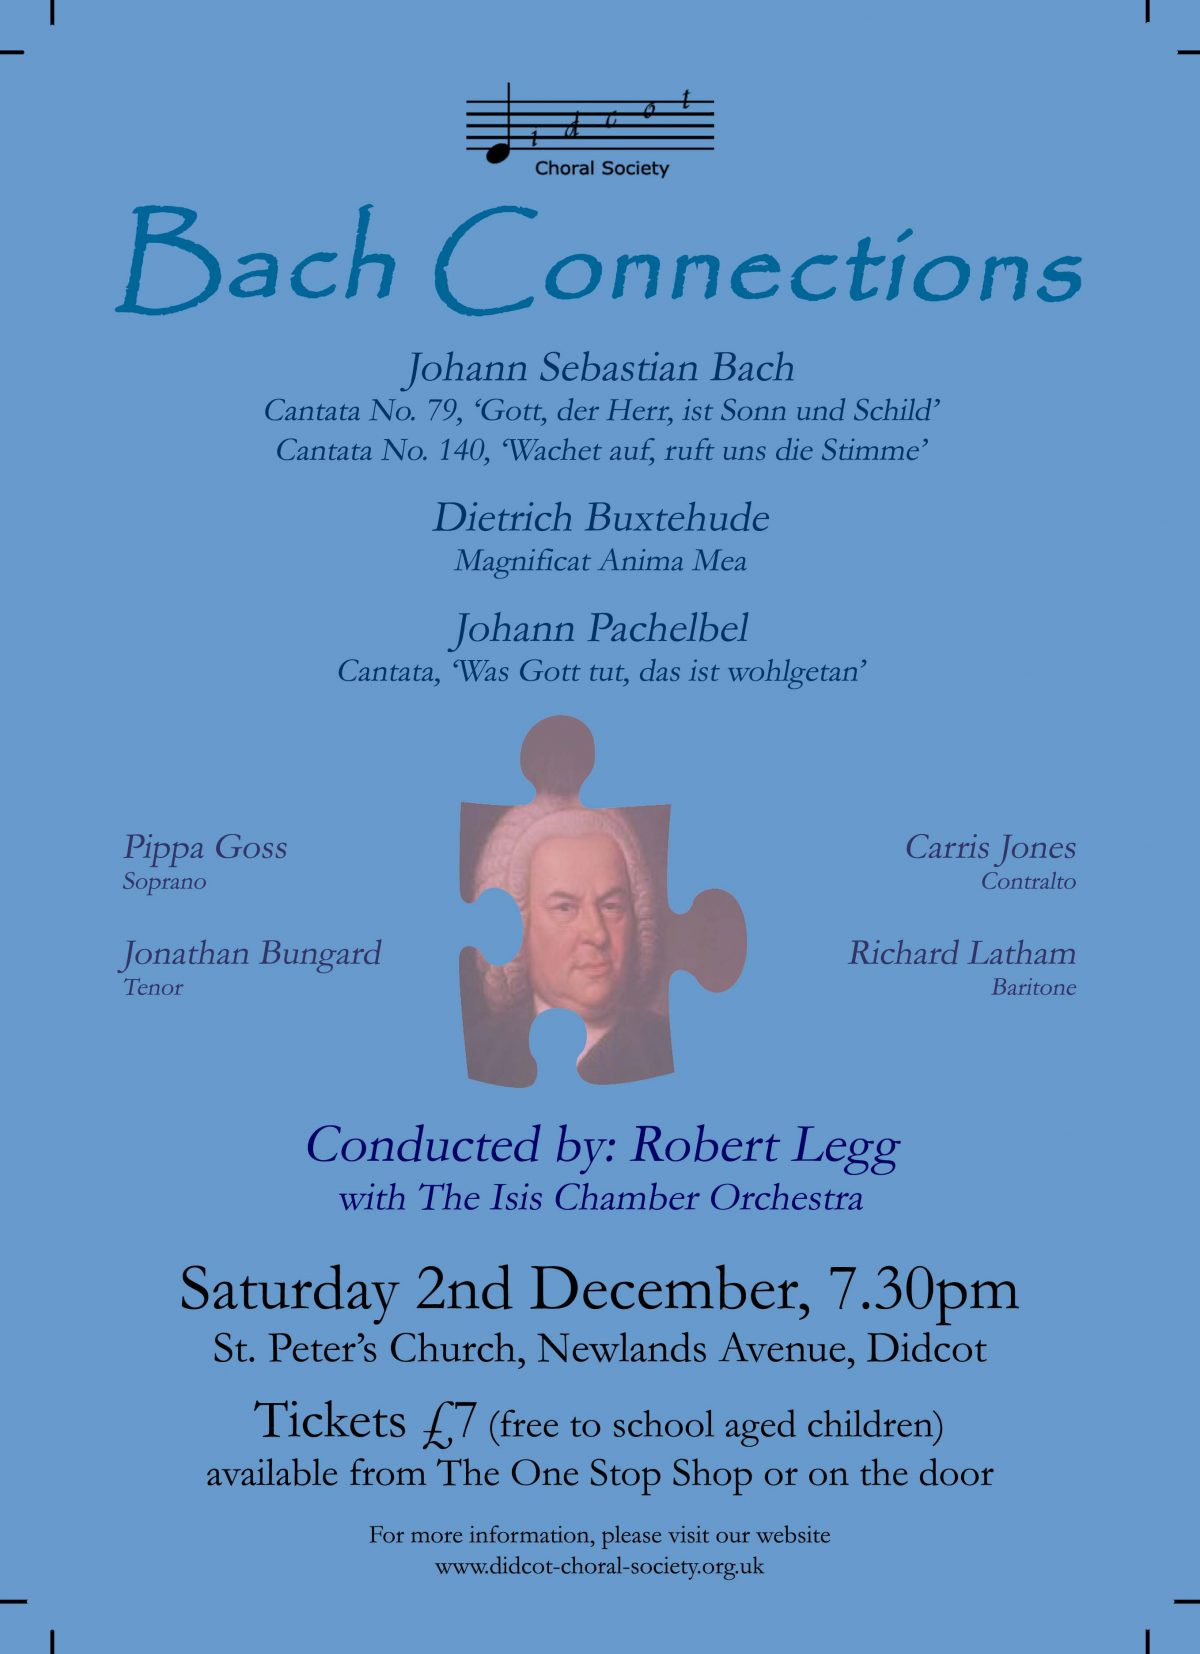 Bach Connections December 2006